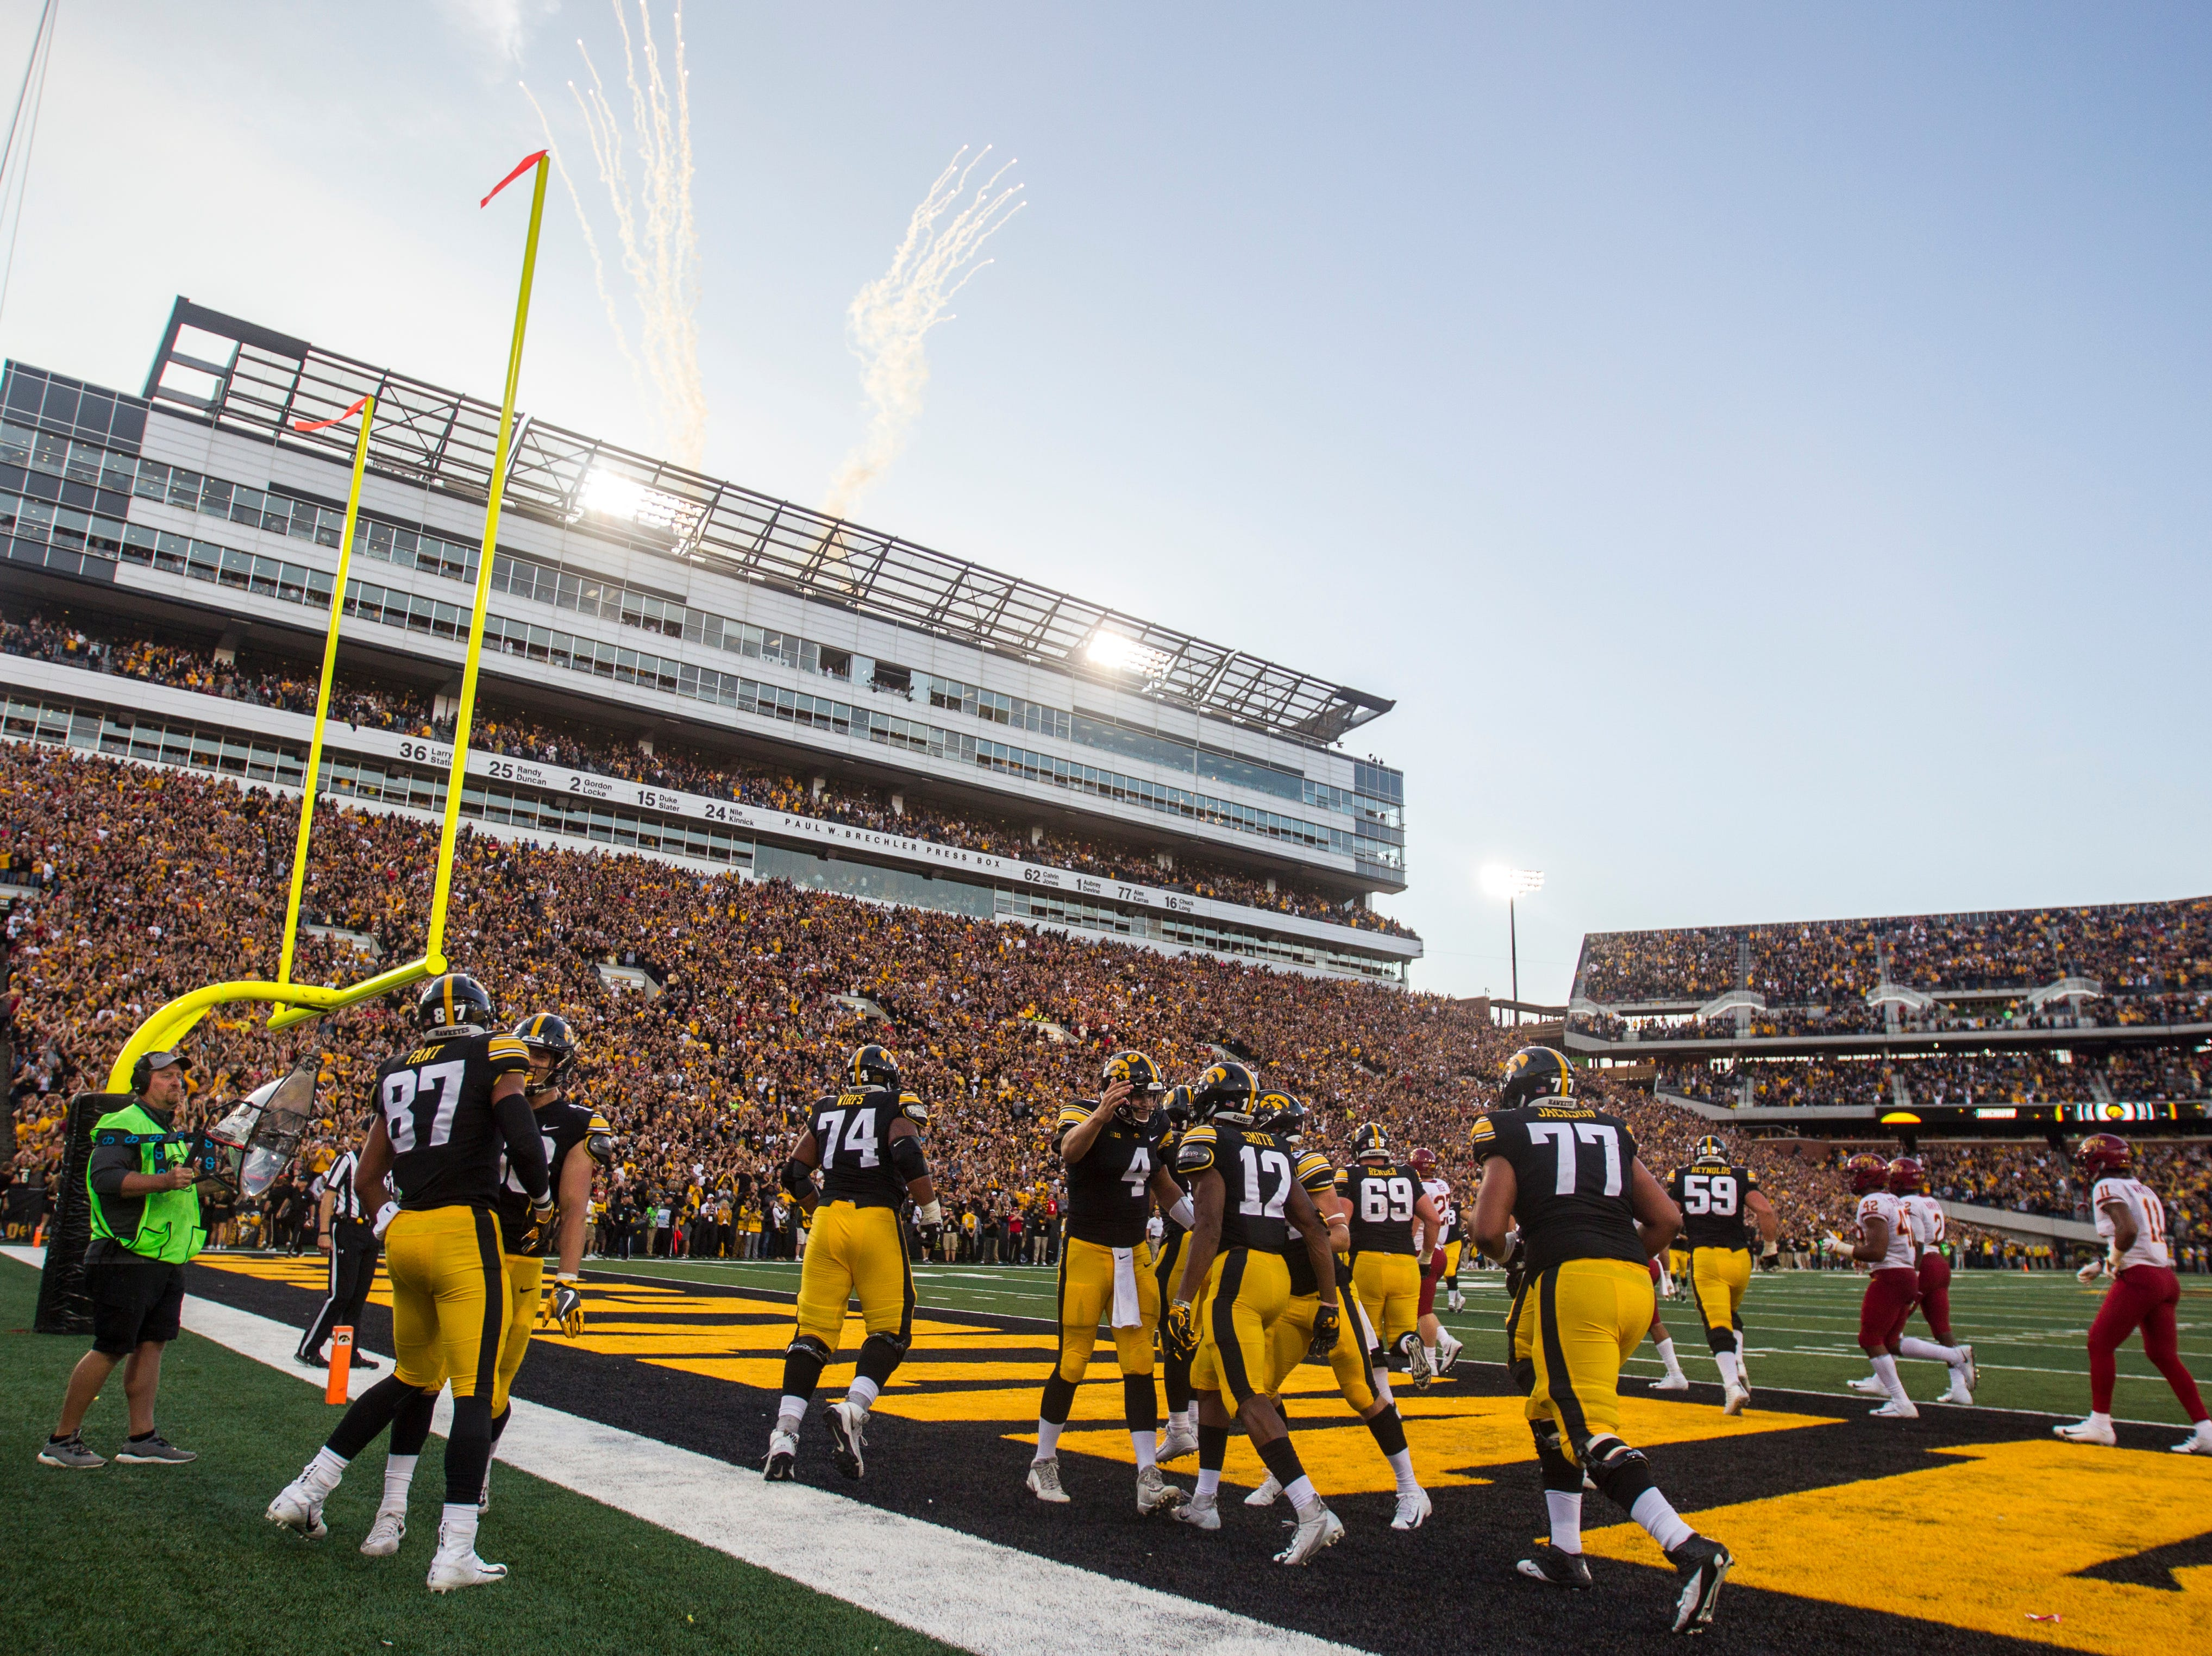 Iowa quarterback Nate Stanley (4) celebrates with teammates after a touchdown during the Cy-Hawk NCAA football game on Saturday, Sept. 8, 2018, at Kinnick Stadium in Iowa City.